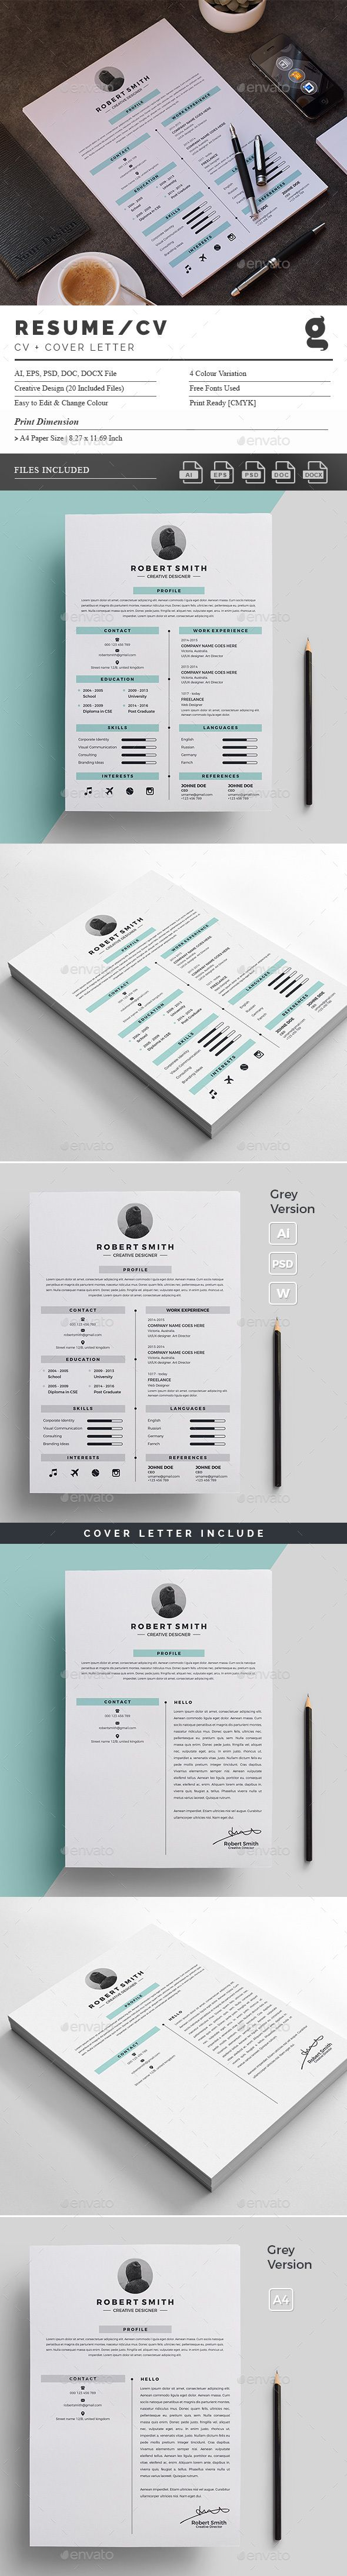 1782 best Killer Resume Template & Design images on Pinterest ...